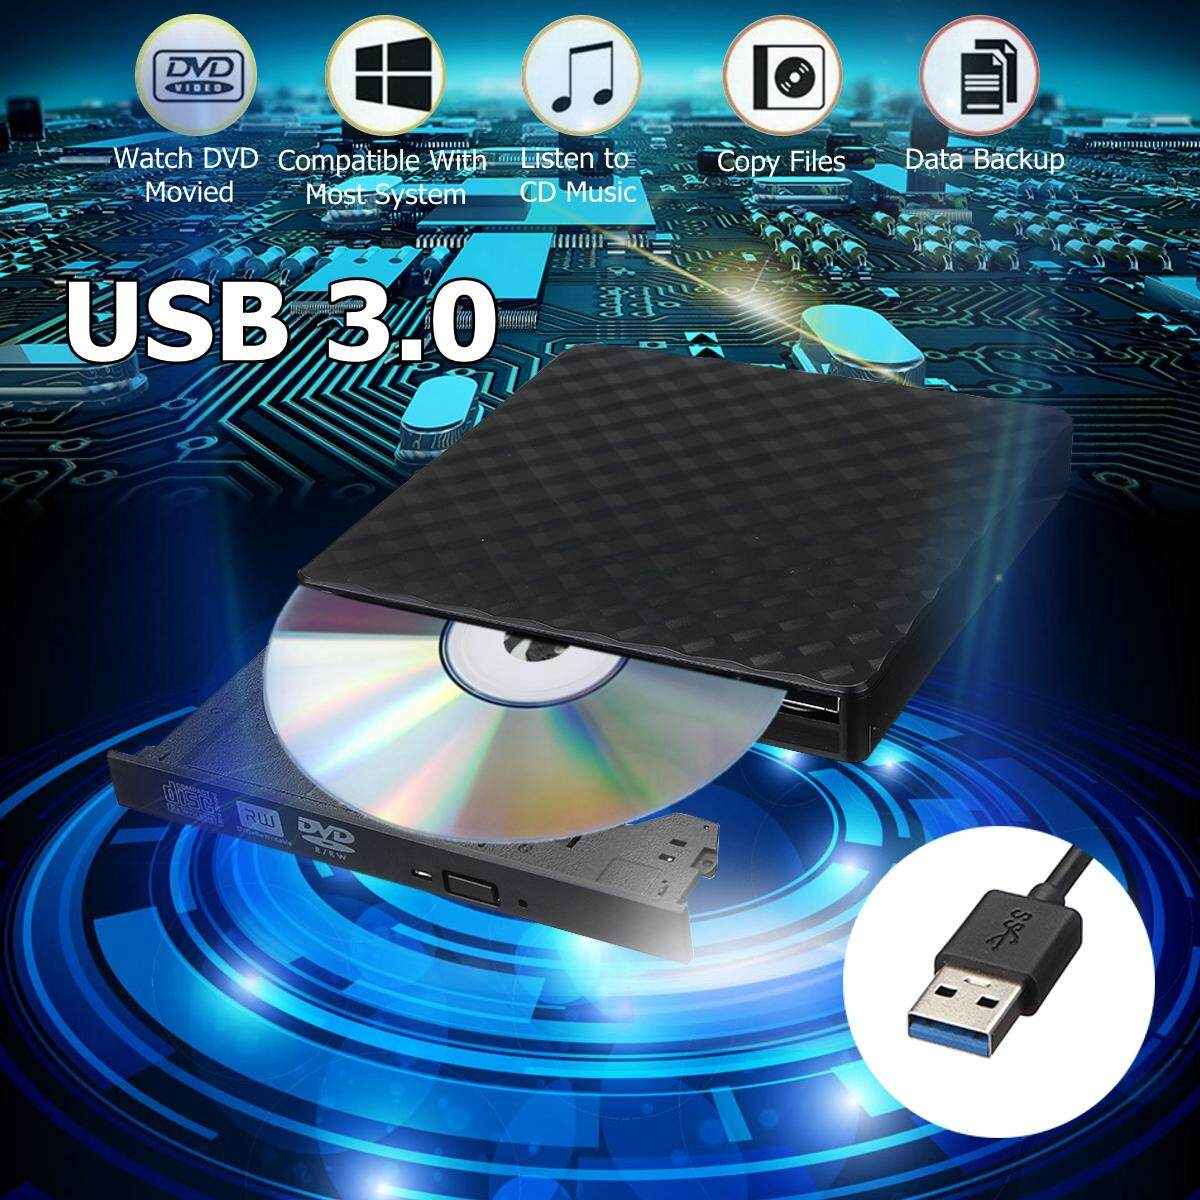 【Free Shipping + Flash Deal】External USB3.0 DVD RW CD Writer Slim Drive Burner Reader Player For PC Laptop